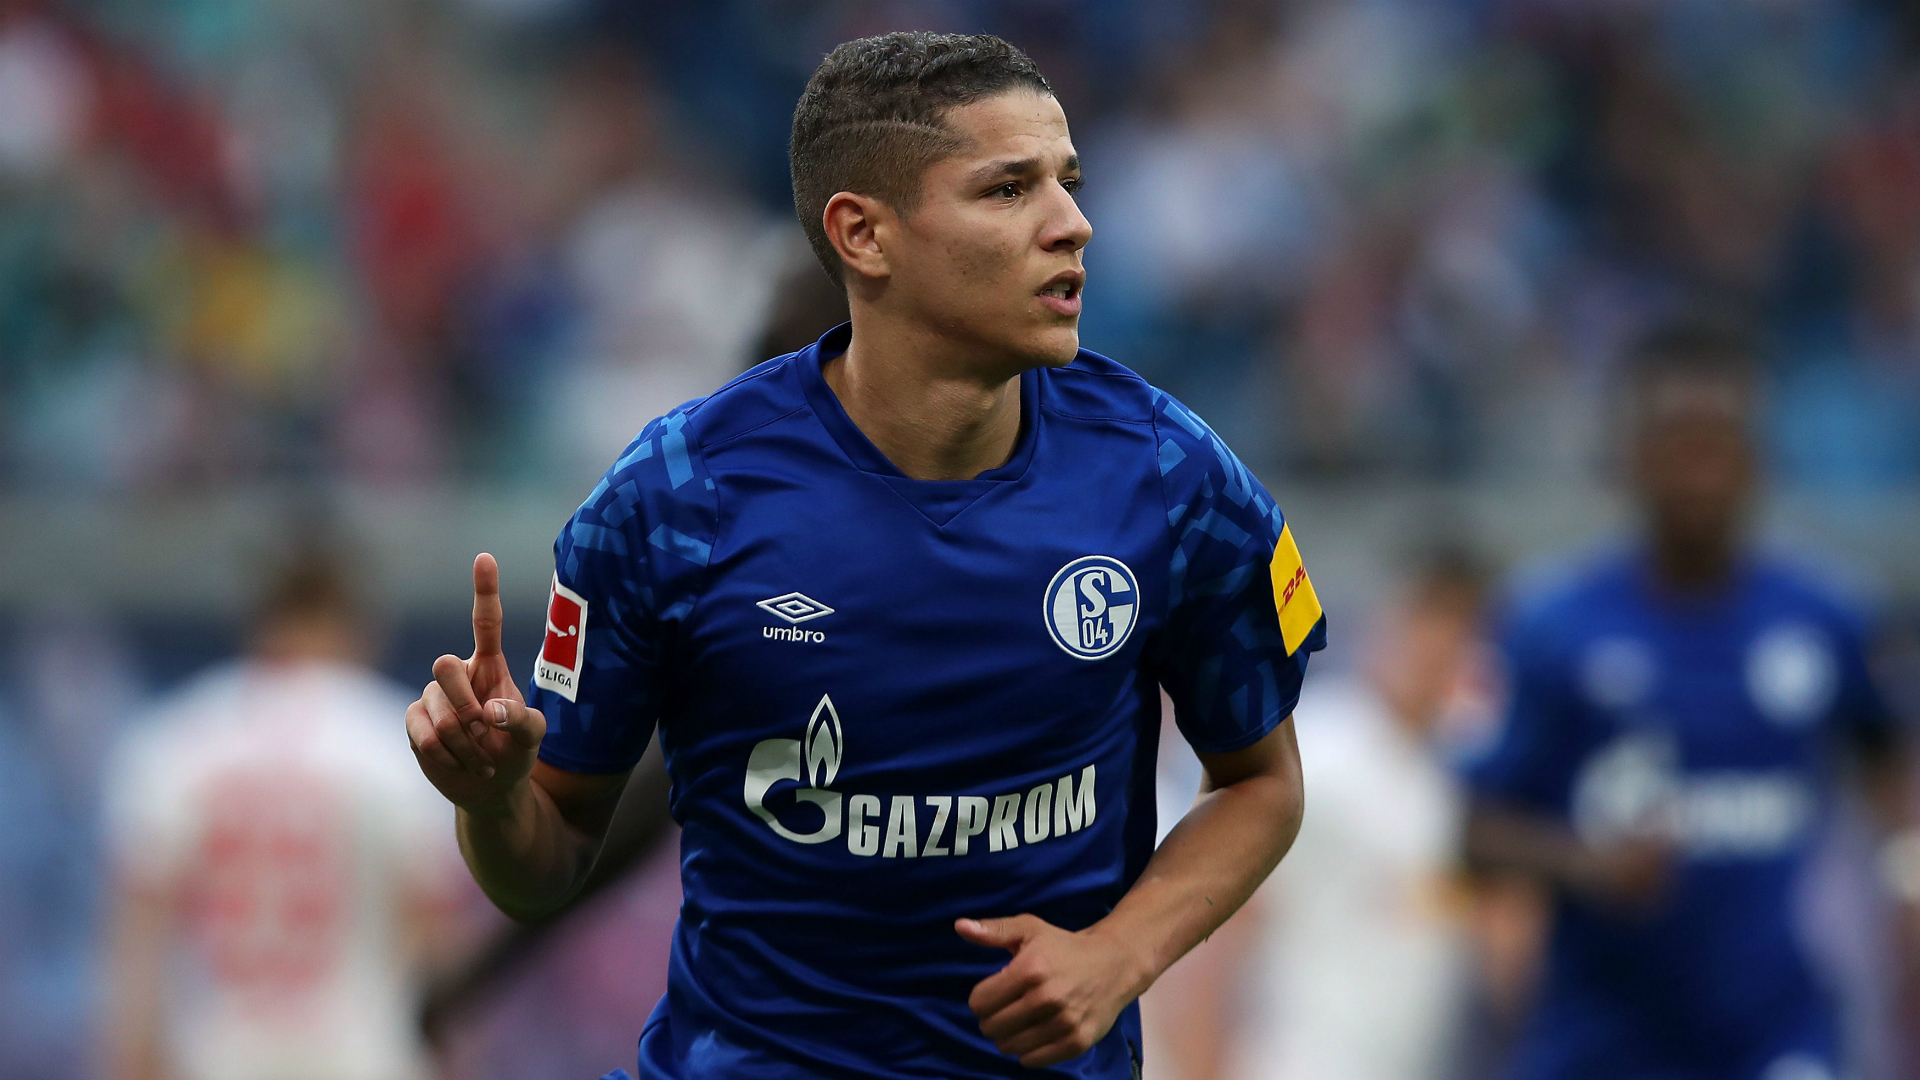 Schalke 04 recall Harit to first team while Bentaleb continues training exile